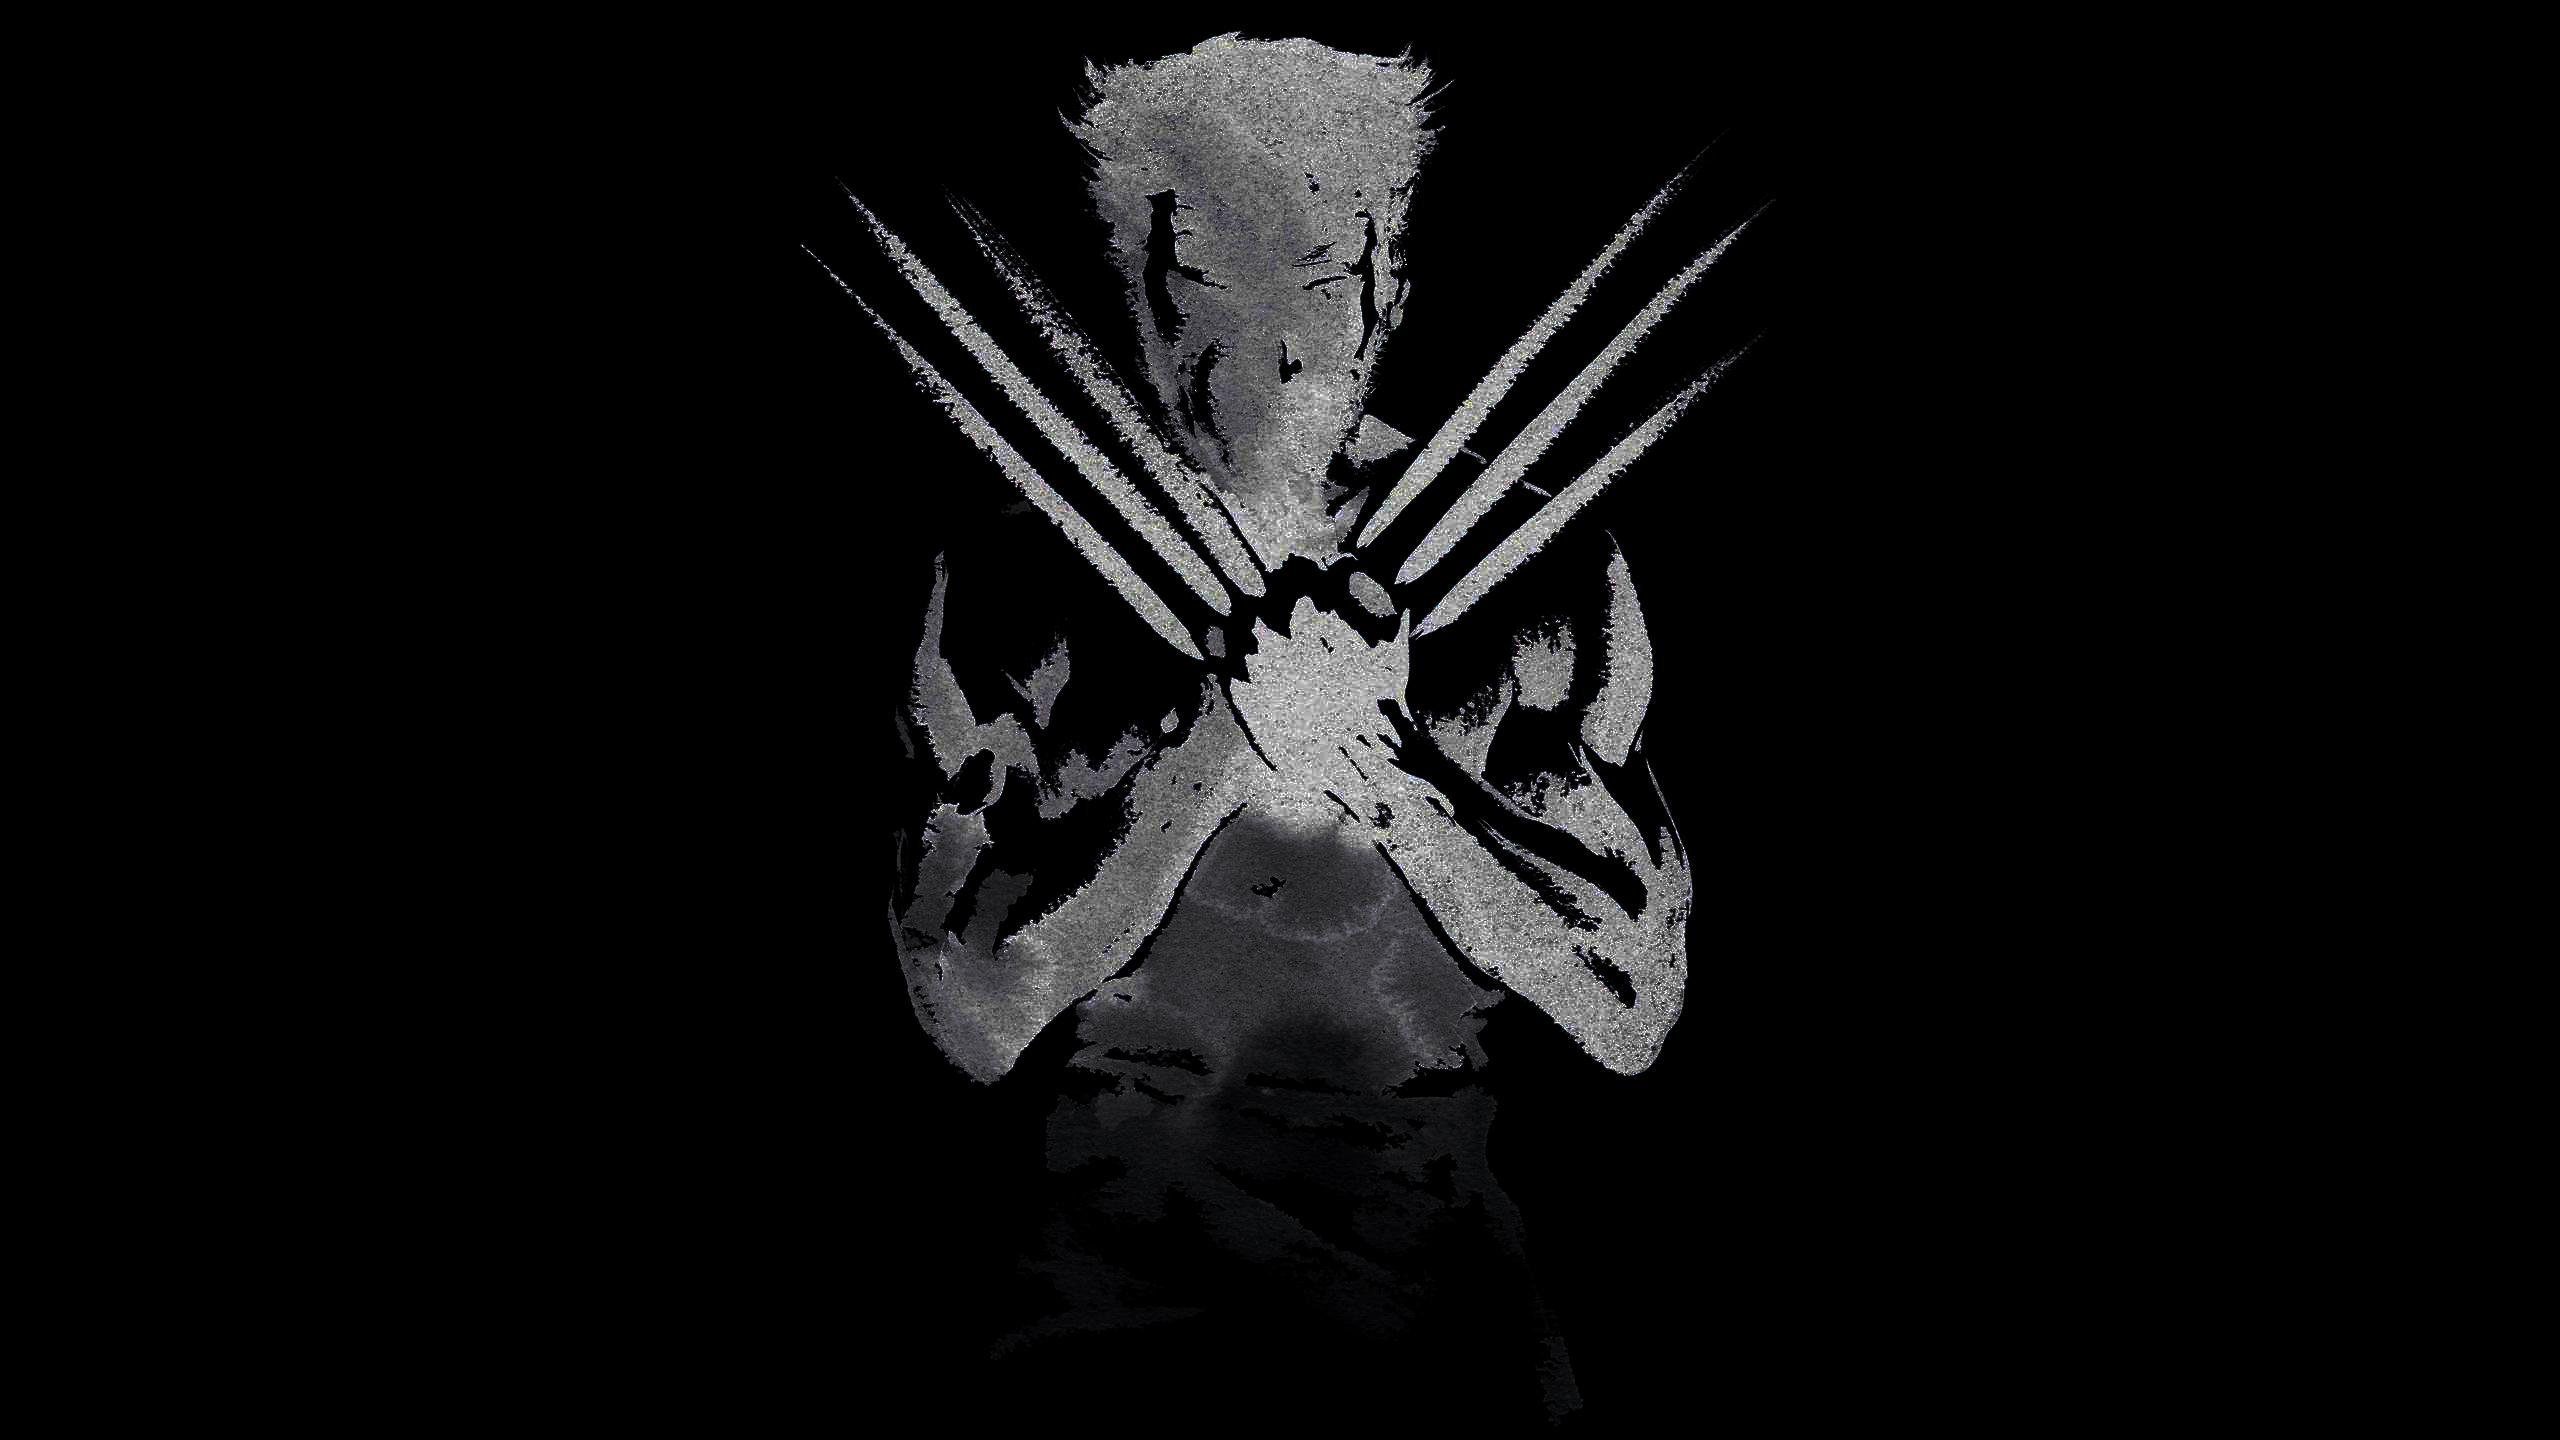 Dota 1 Heroes Wallpaper Hd Wolverine Wallpapers Photos And Desktop Backgrounds Up To